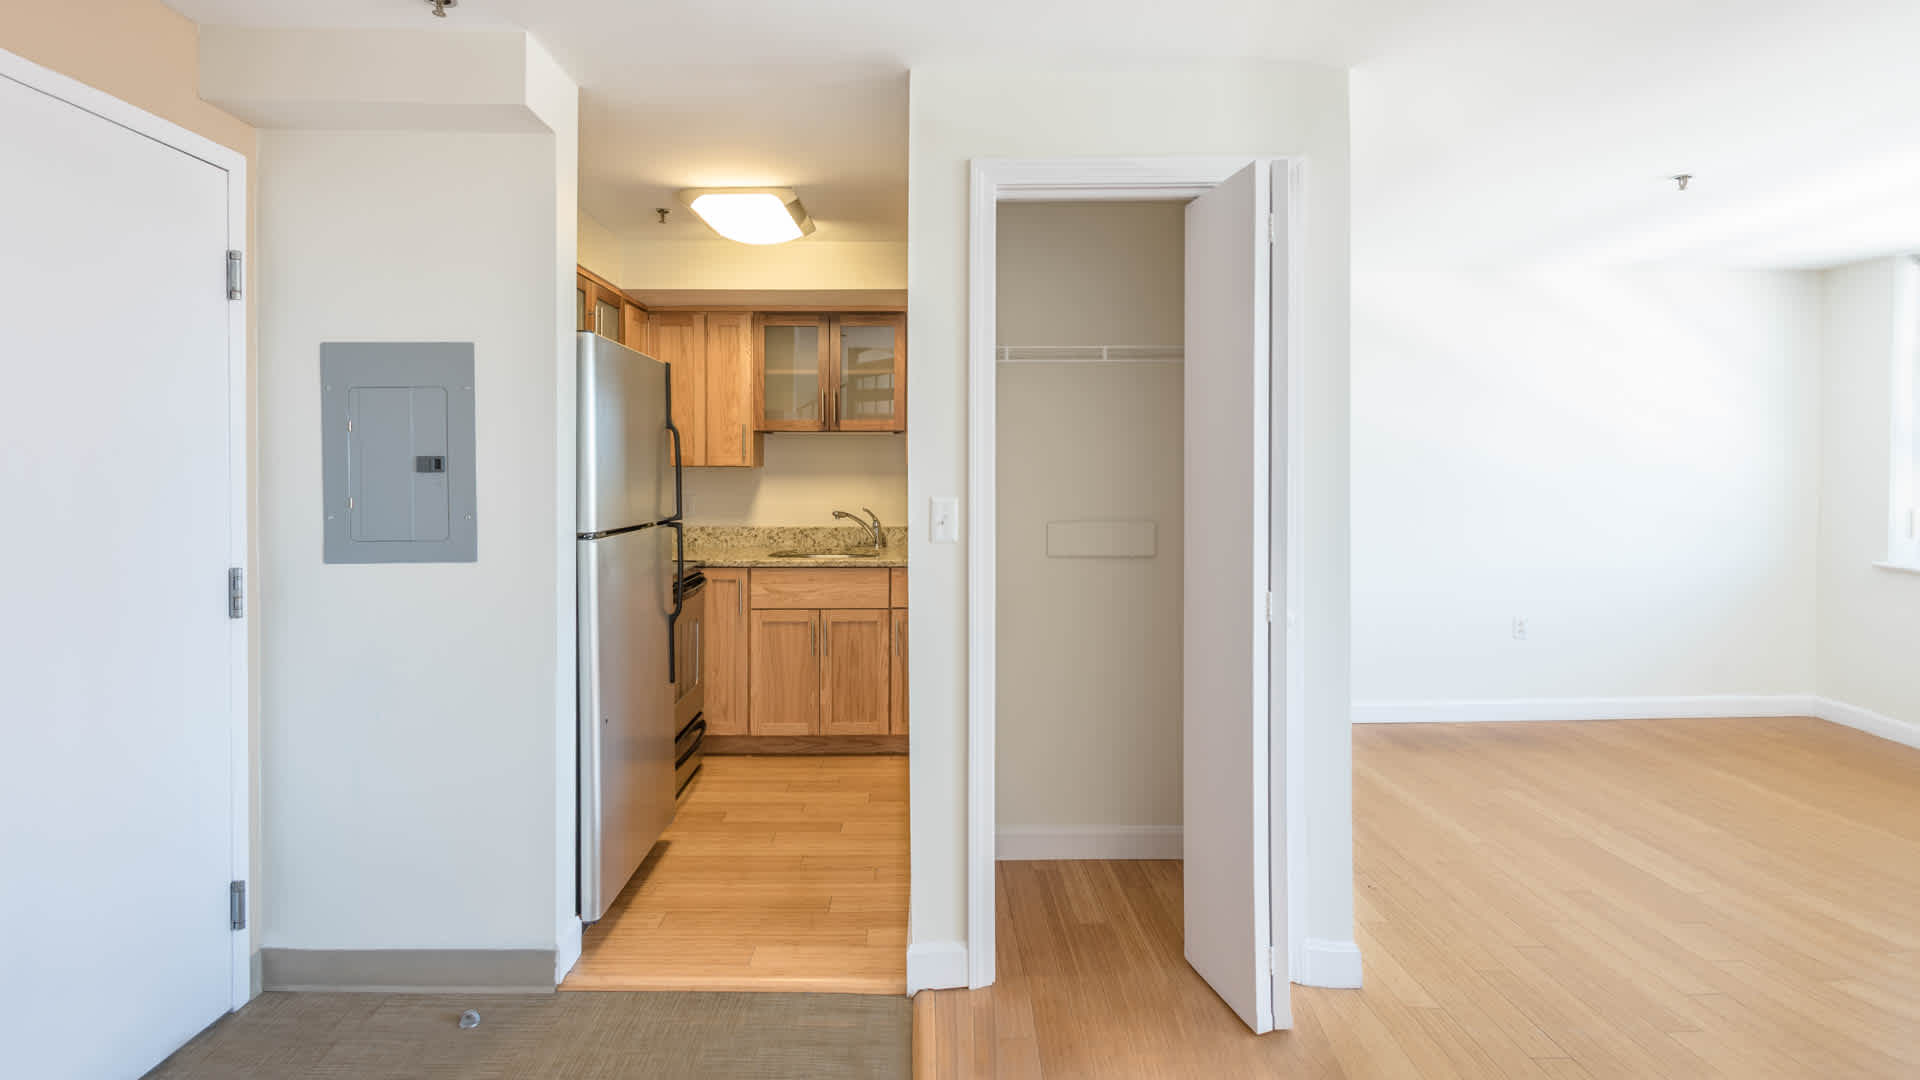 Lofts at kendall square apartments kitchen and living area